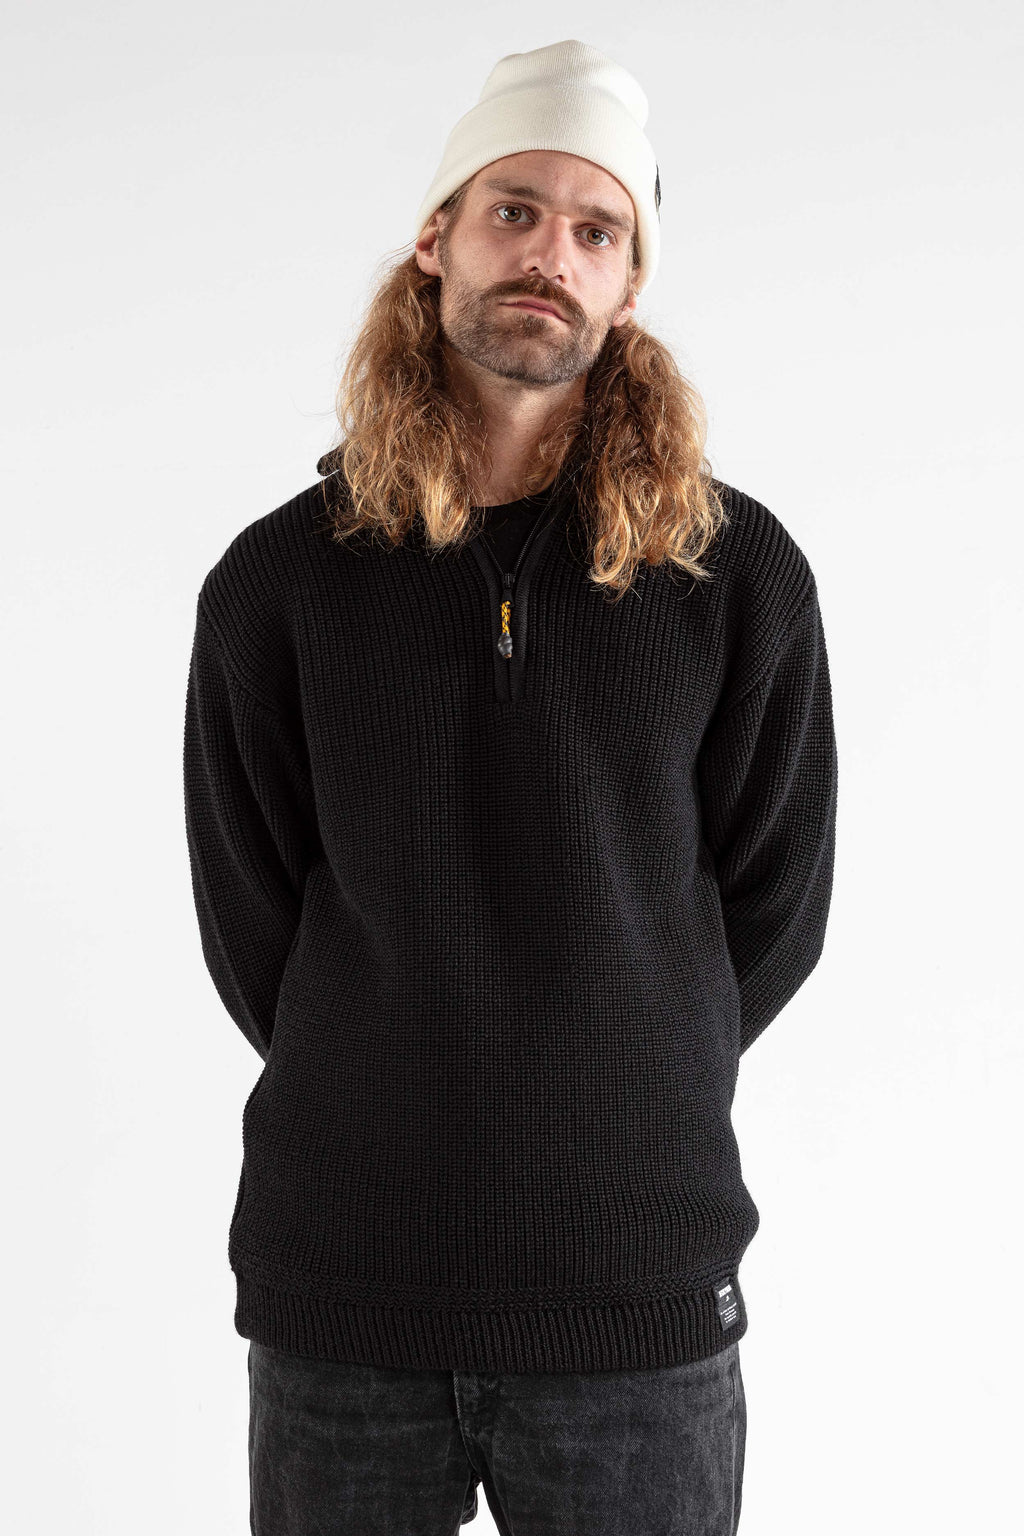 The SEAMAN SWEATER black